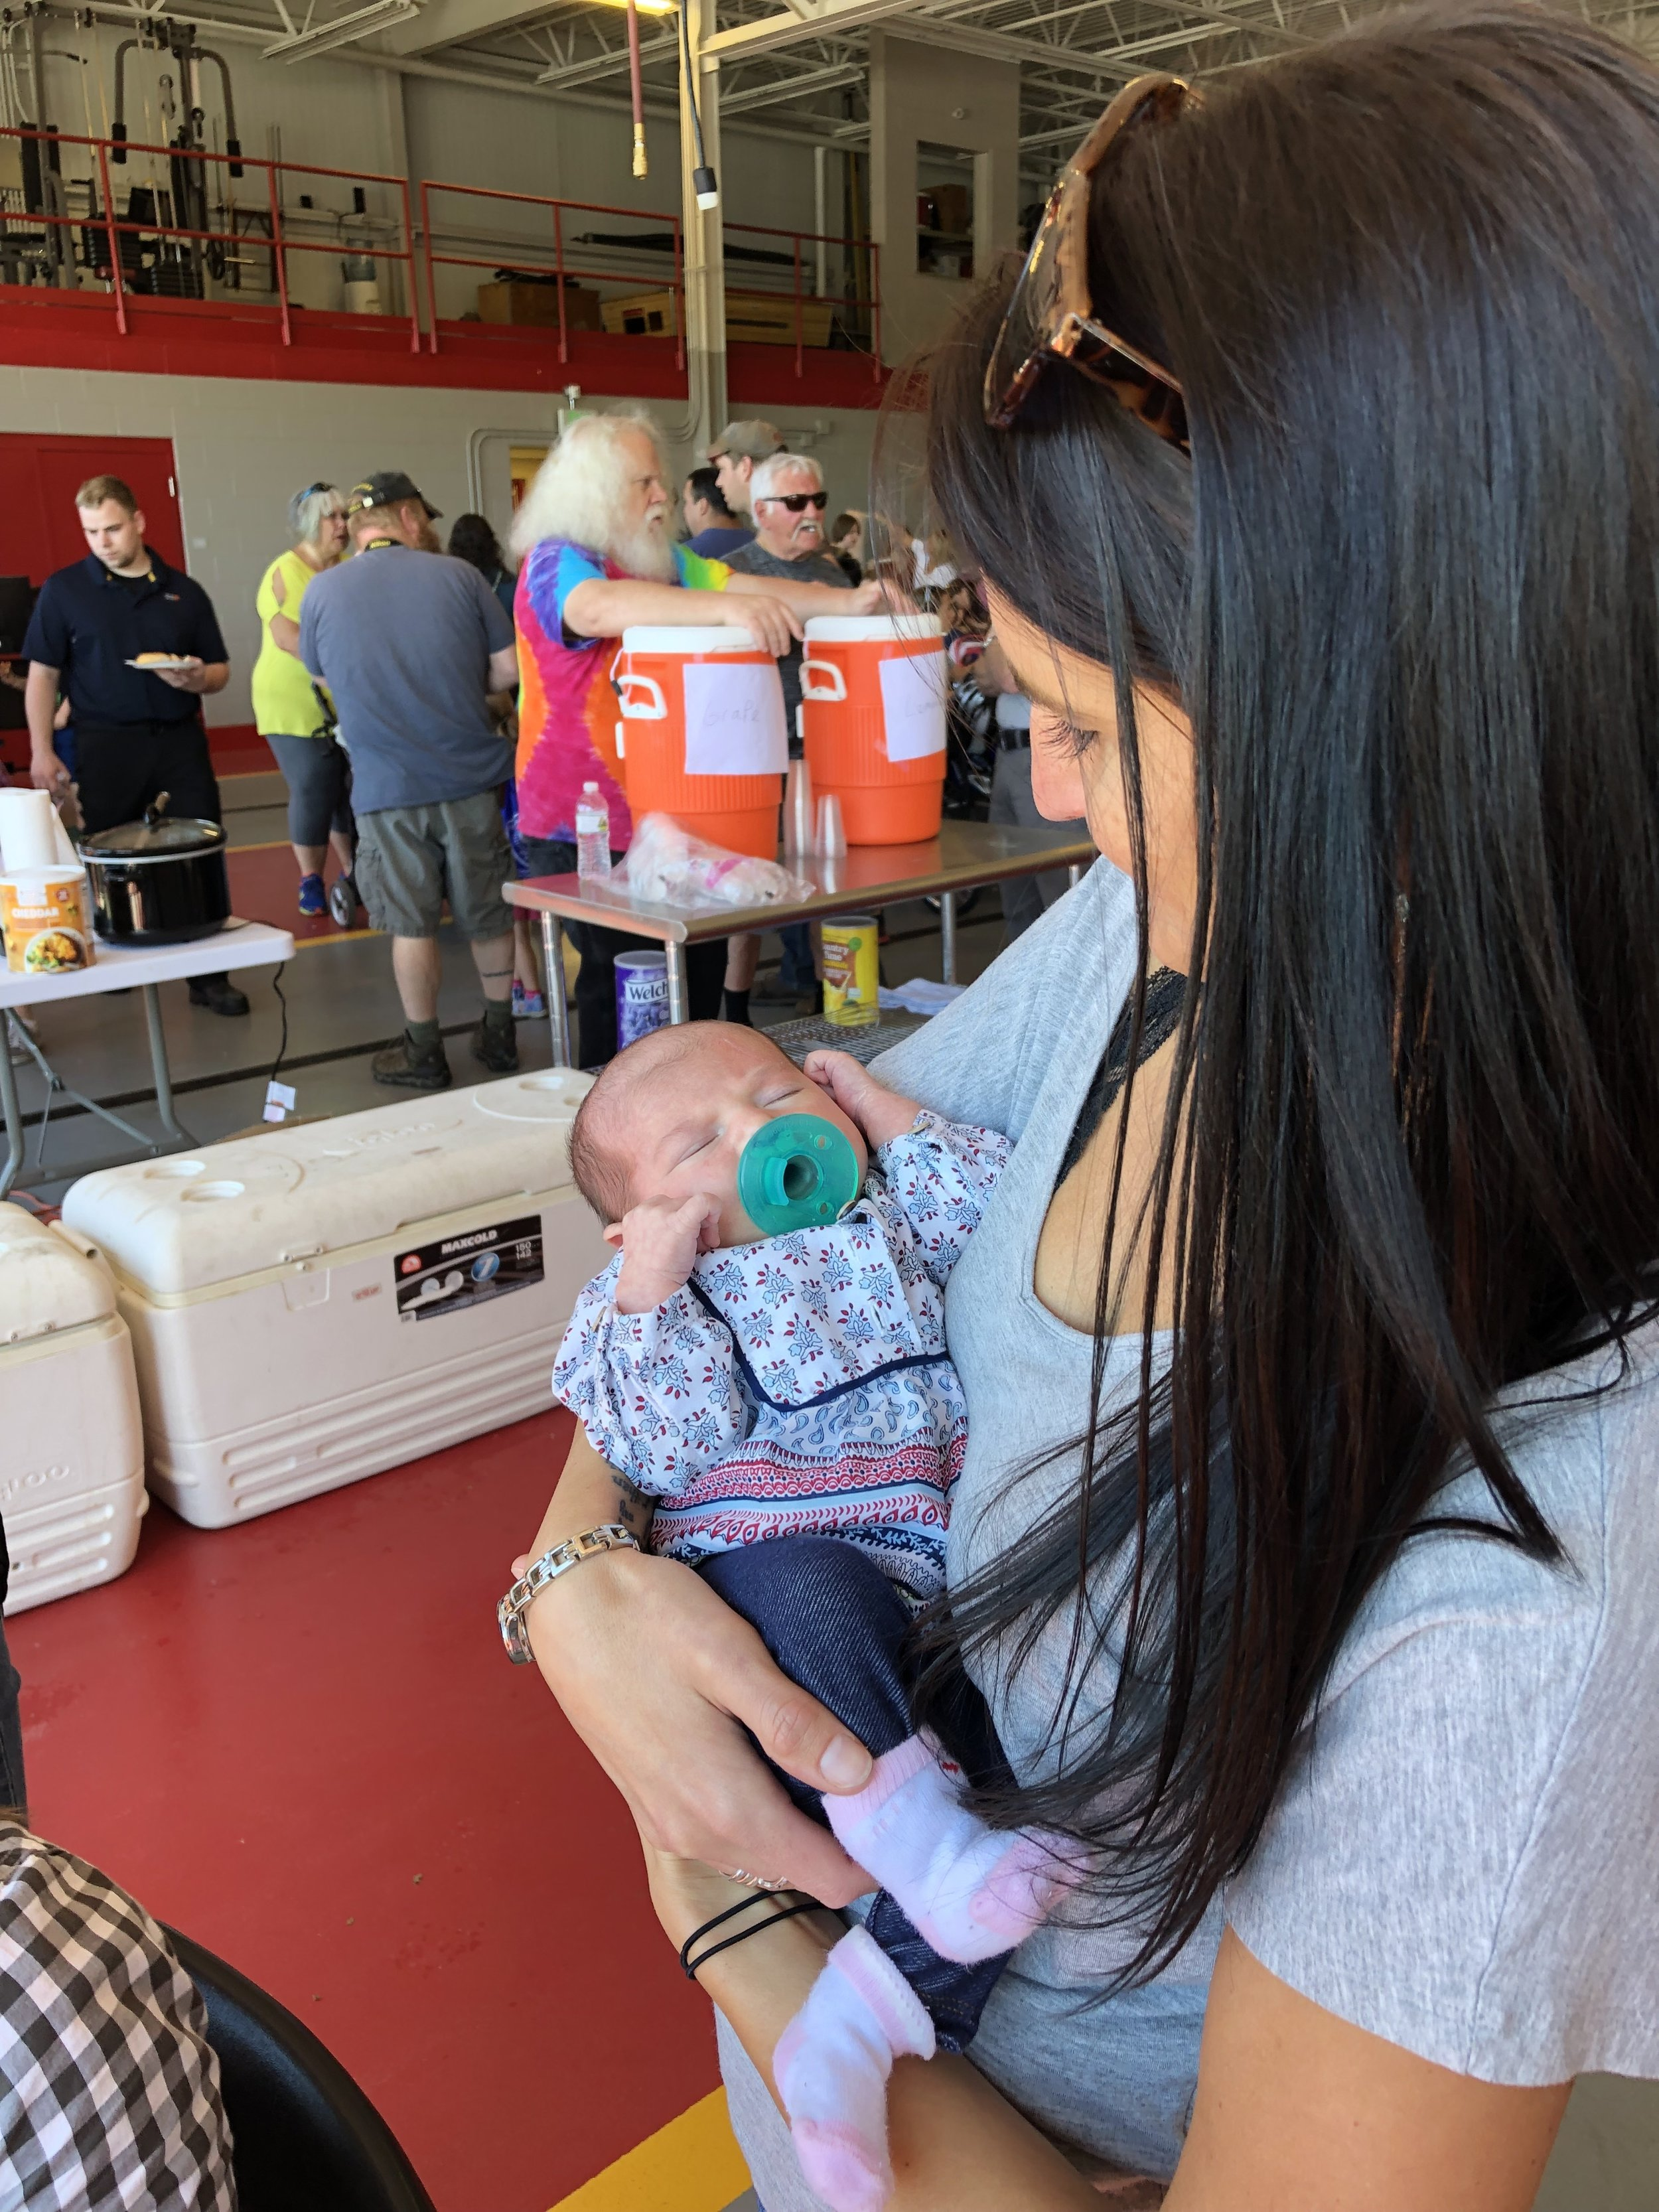 The youngest participant at the 13th annual Bike Rodeo Saturday was week old Kinsley Cole, newborn of Jessica and Royce. Holding the tiny lass was friend Kristin Pelkey.